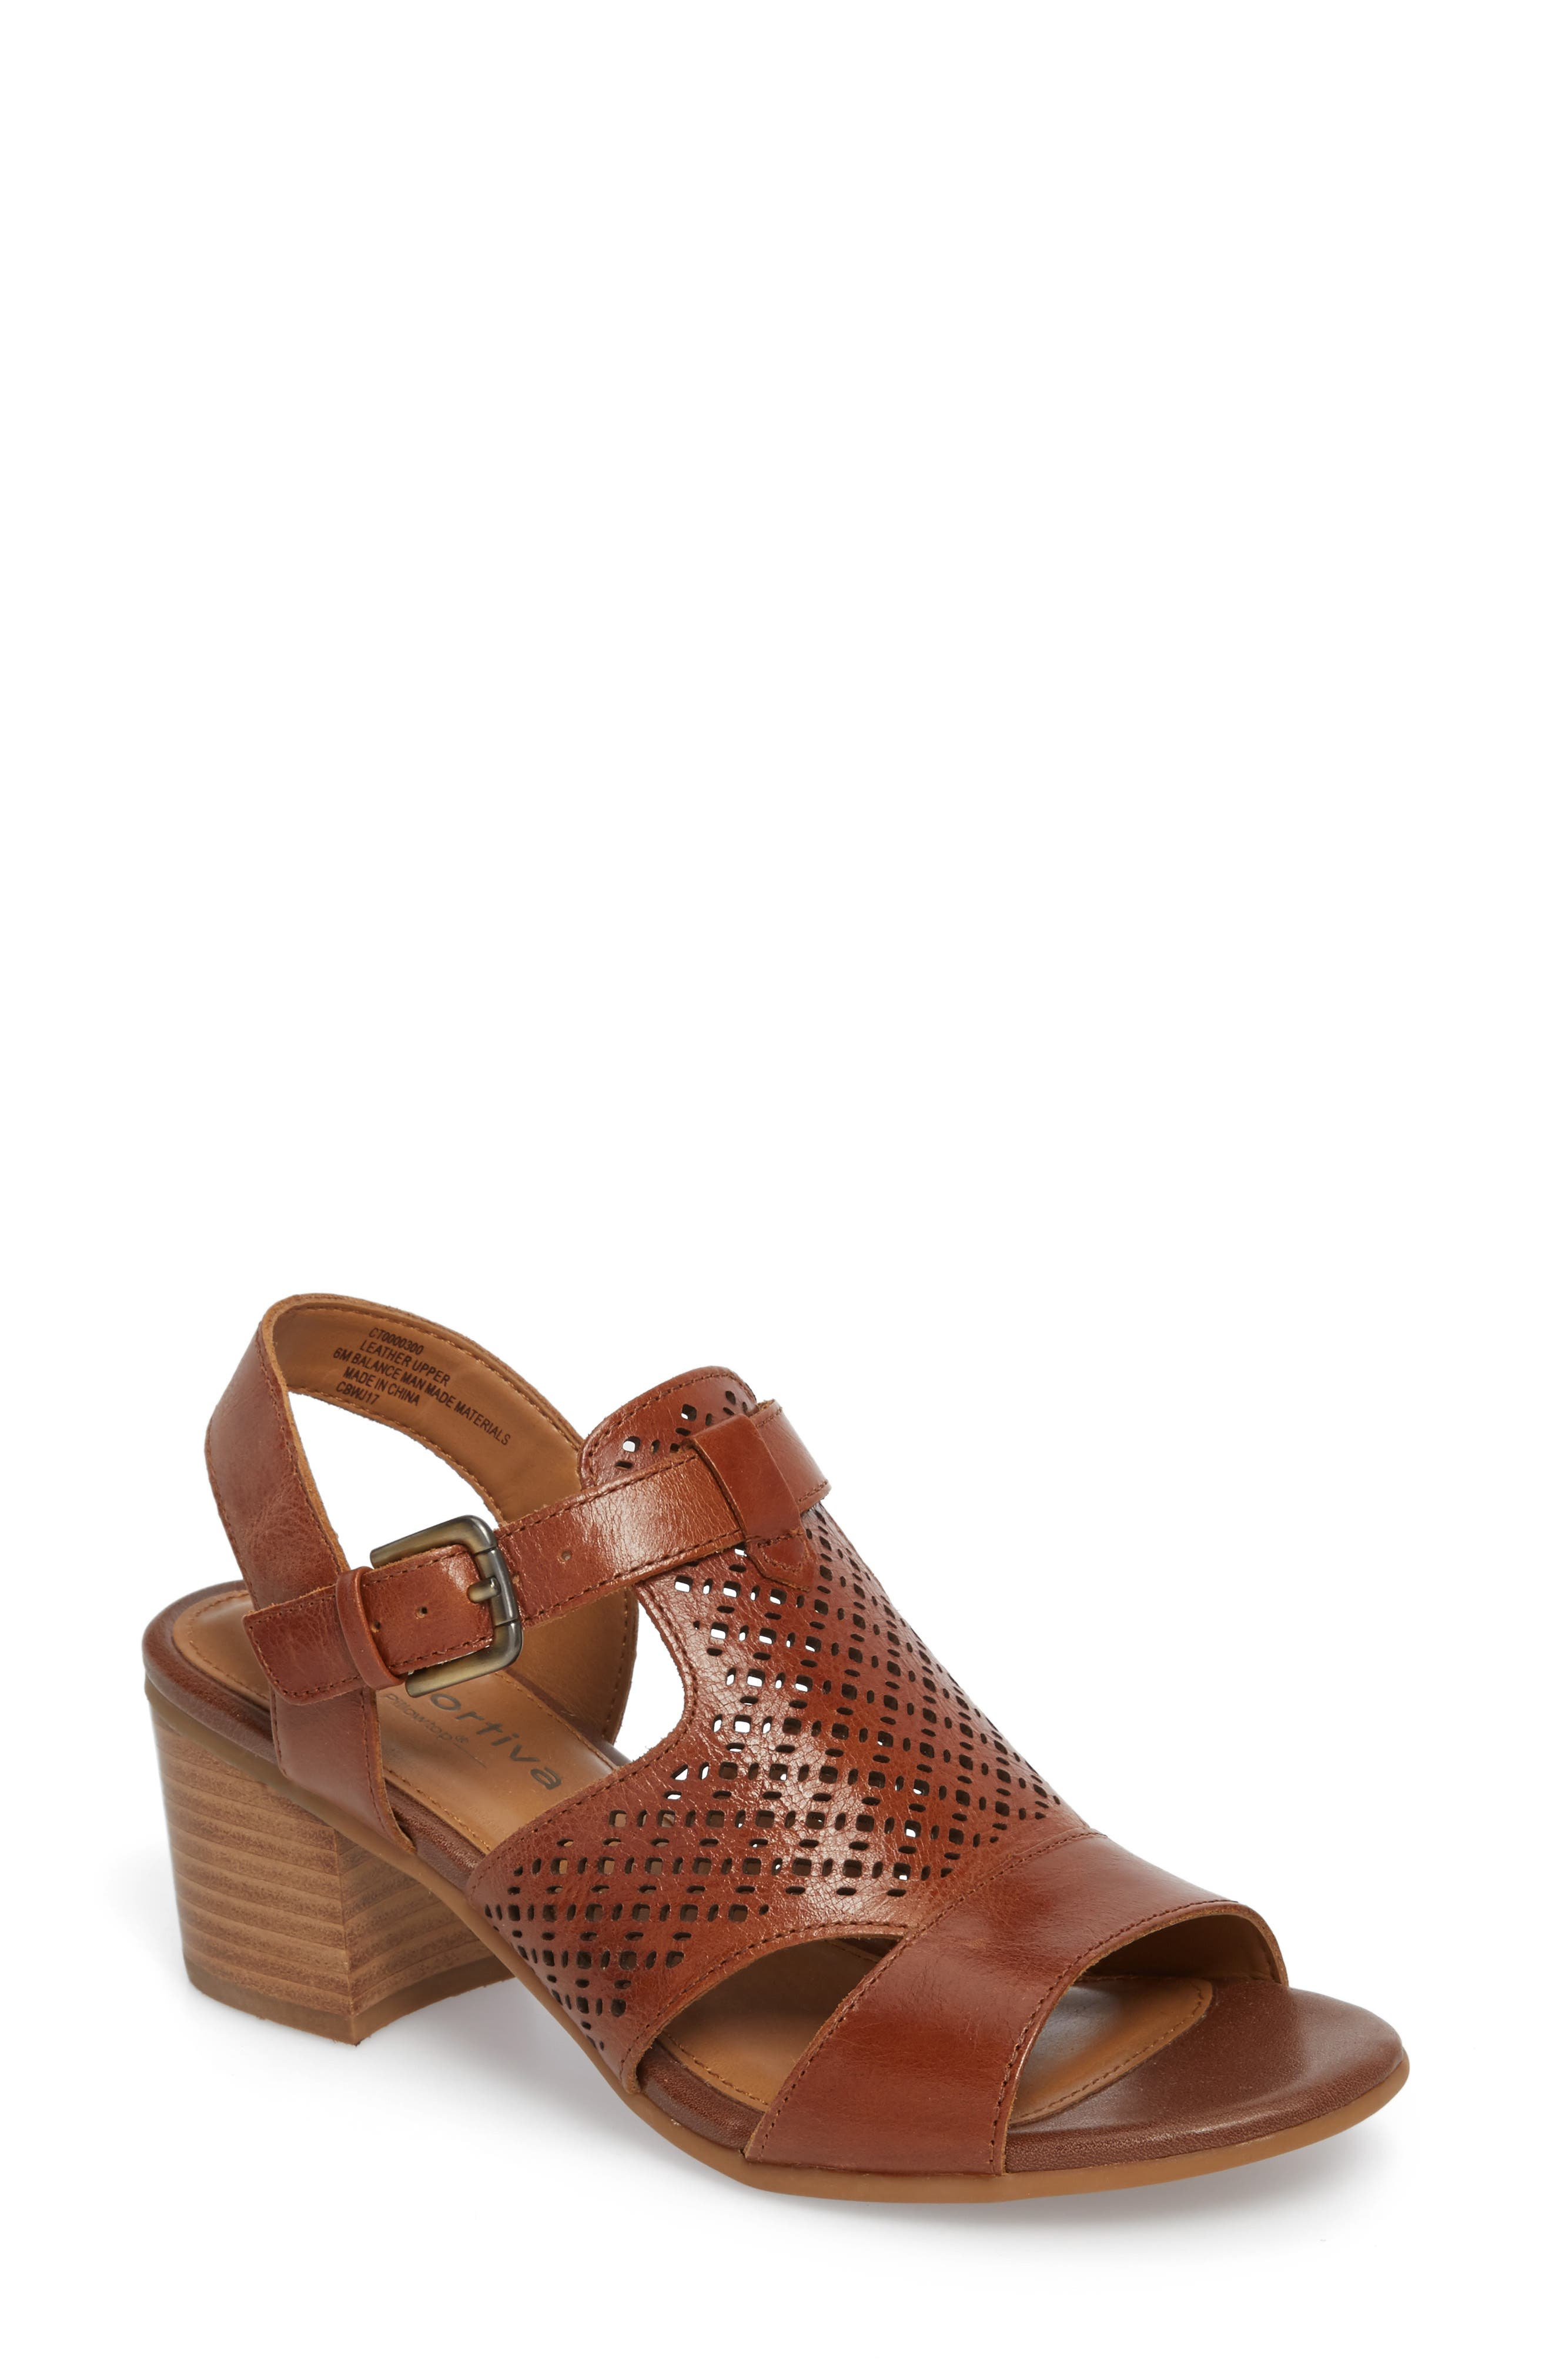 Amber Perforated Block Heel Sandal,                             Main thumbnail 1, color,                             Luggage Leather